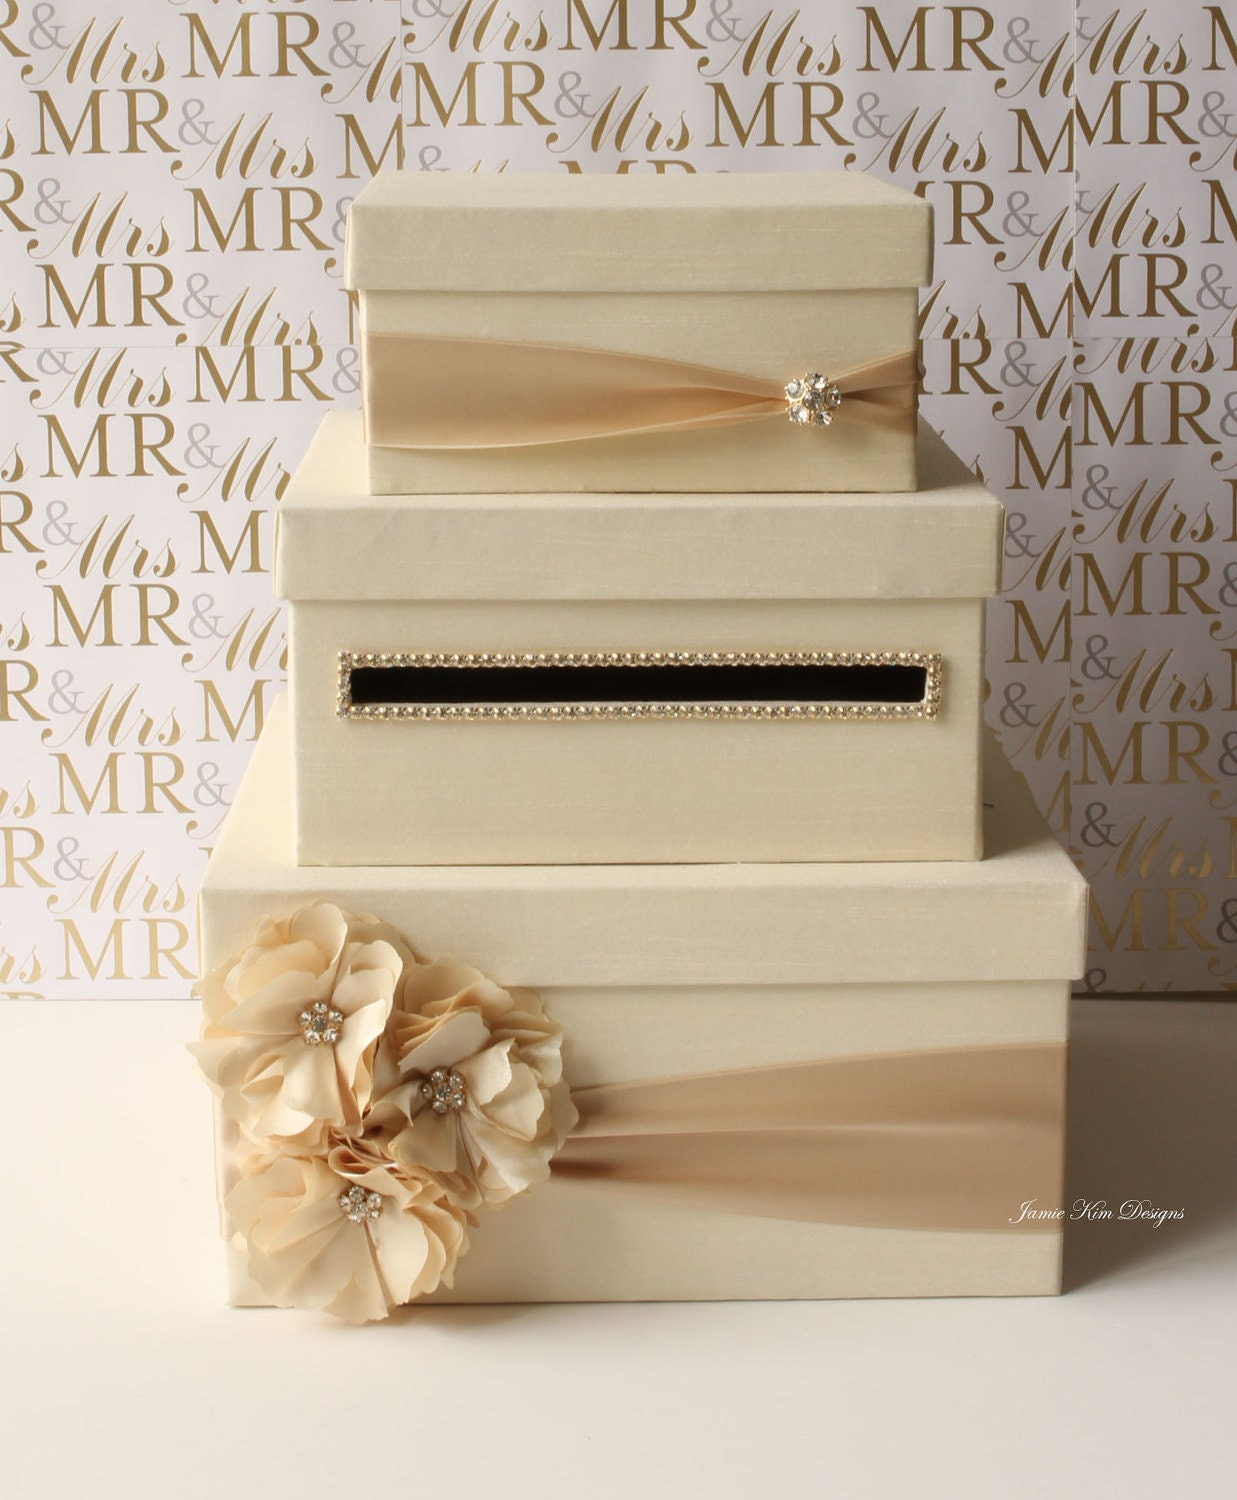 Wedding Gift Box Suggestions : Wedding Card Box Money Box Gift Card Holder choose your